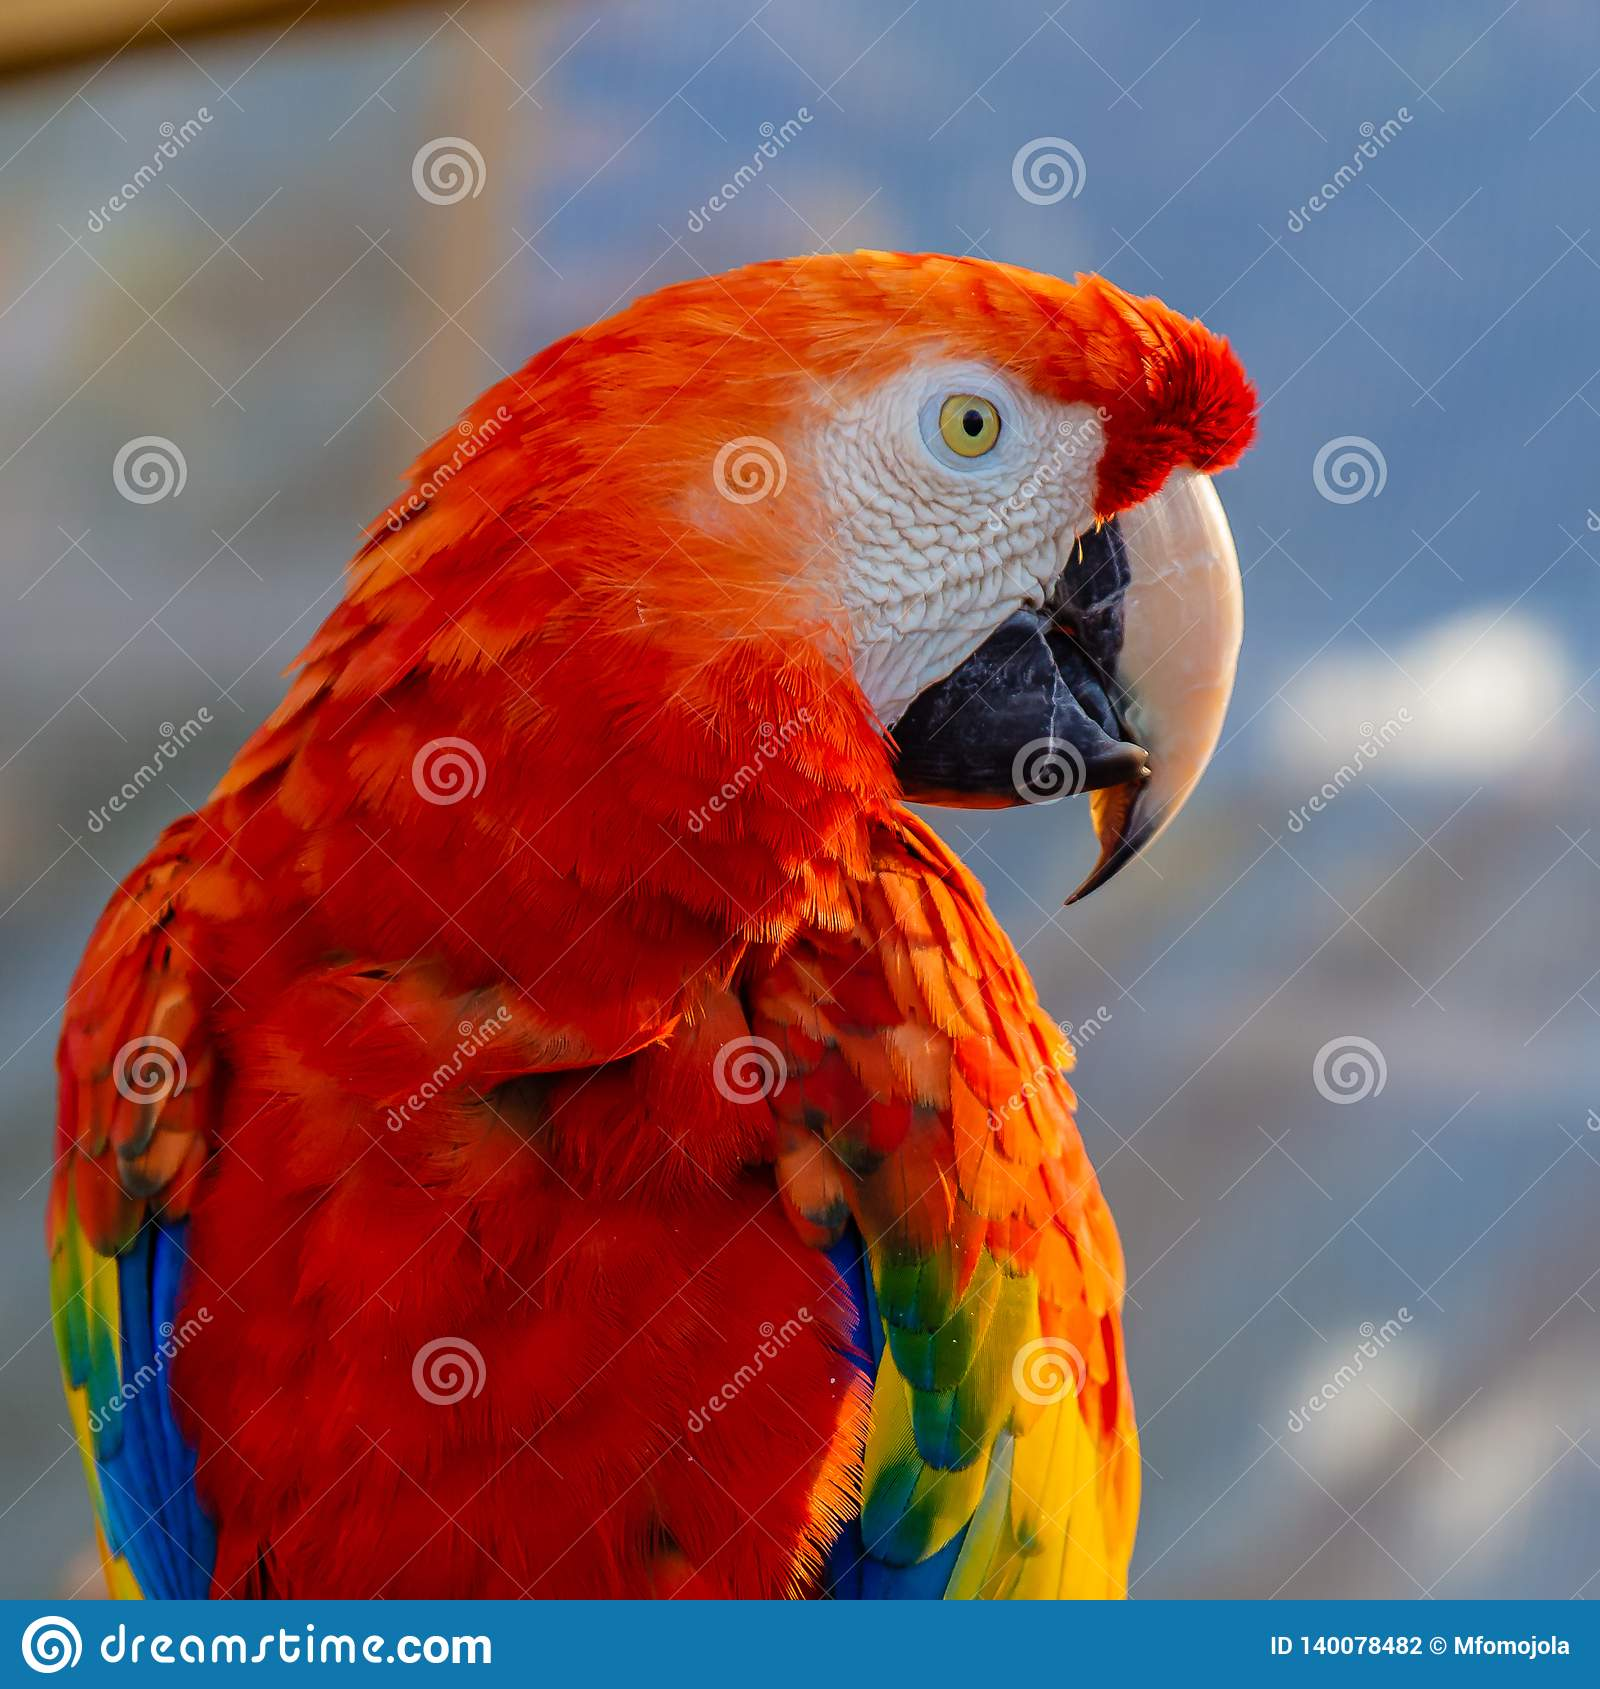 Portrait Of The Head Of Scarlet Macaw Parrot Stock Photo